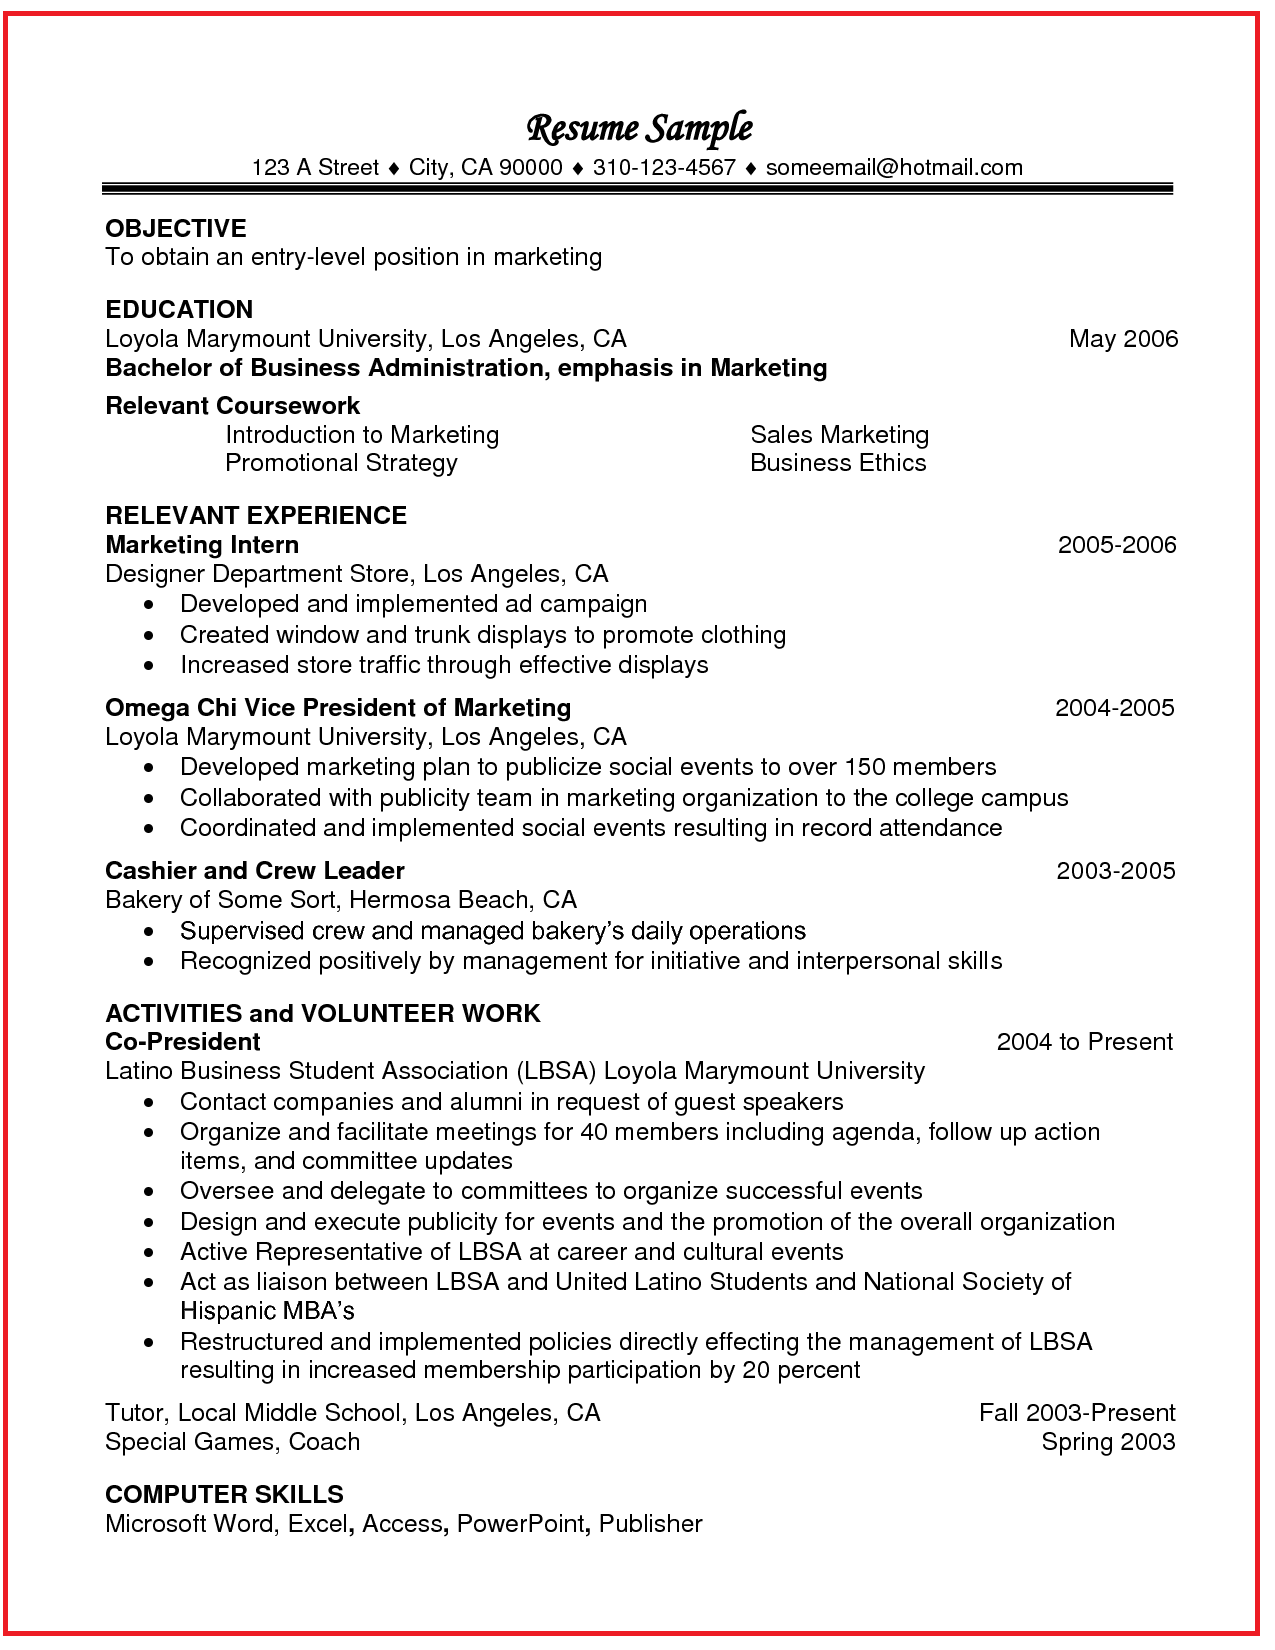 Additional coursework on resume adding relevant